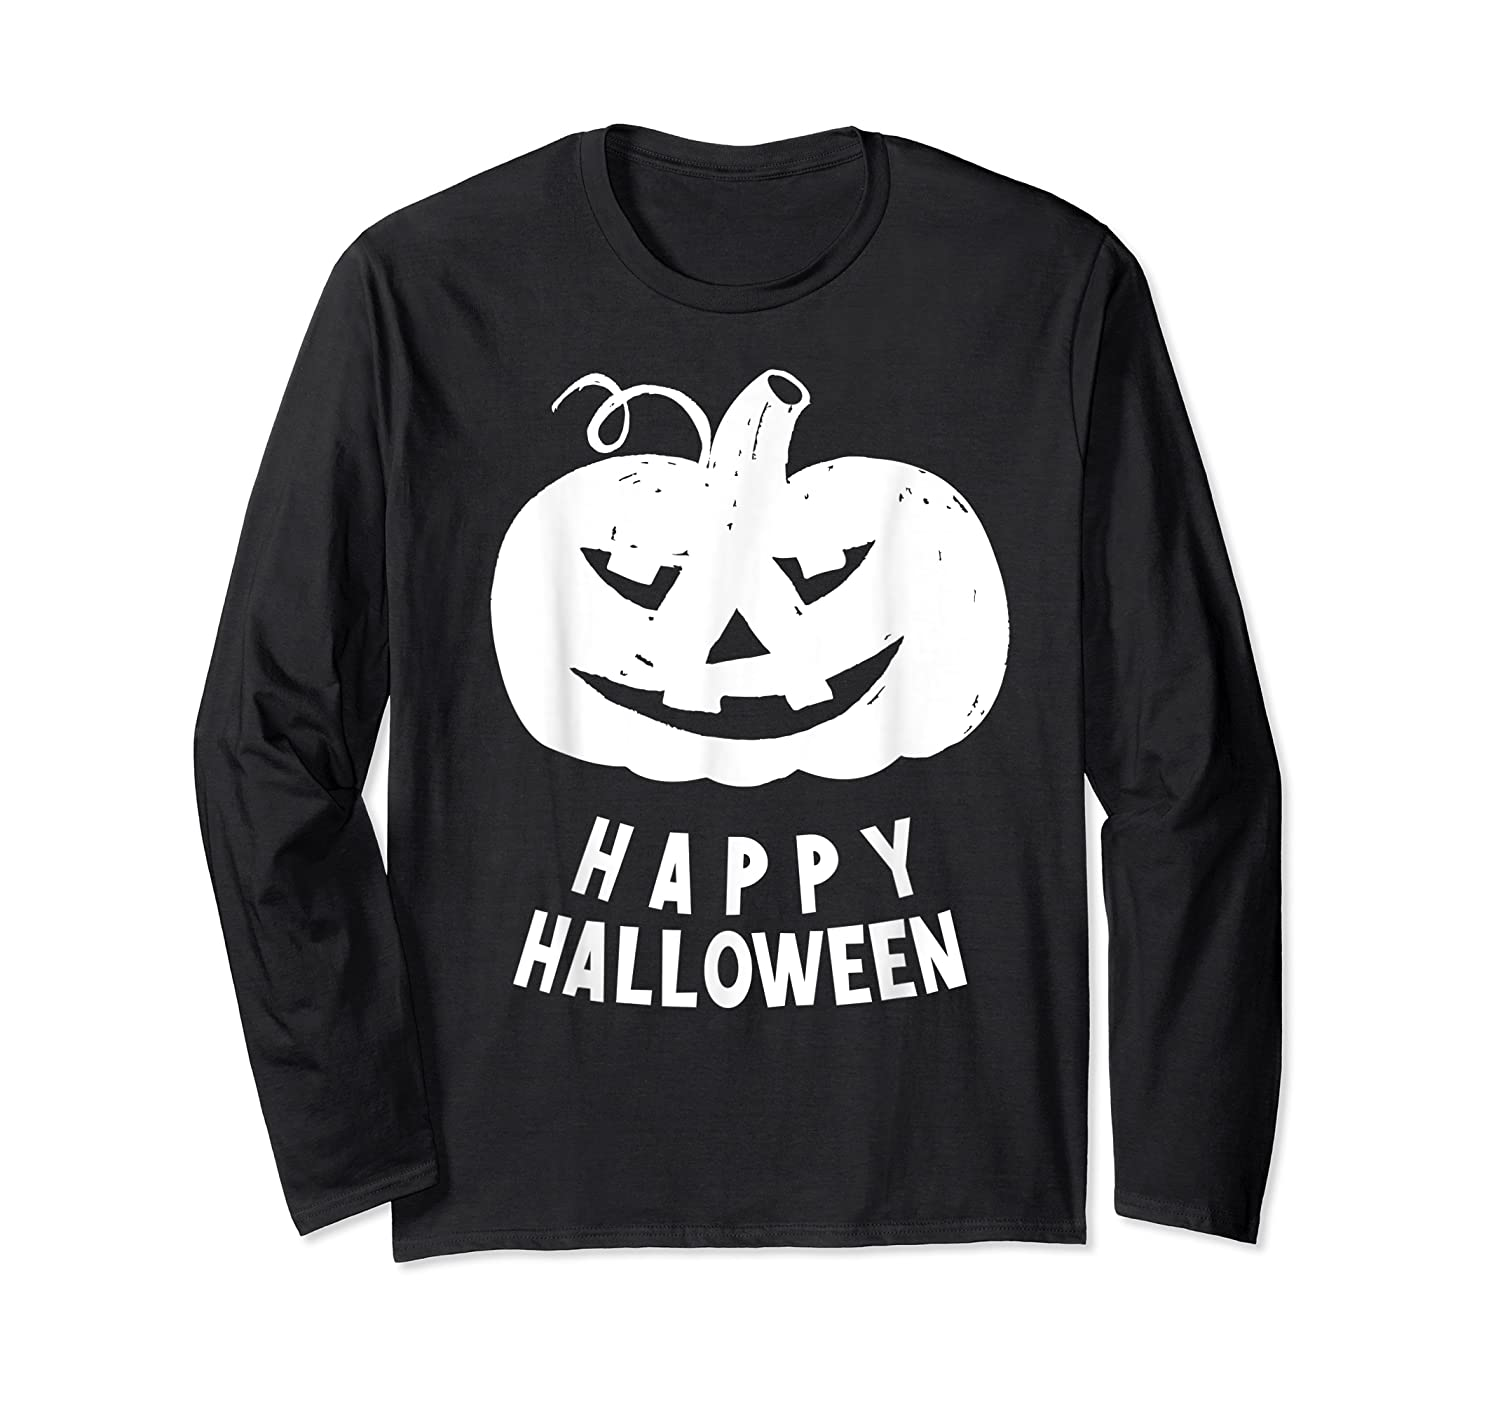 Funny Happy Halloween Costumes Scary Spooky Pumpkin Costume Shirts Long Sleeve T-shirt